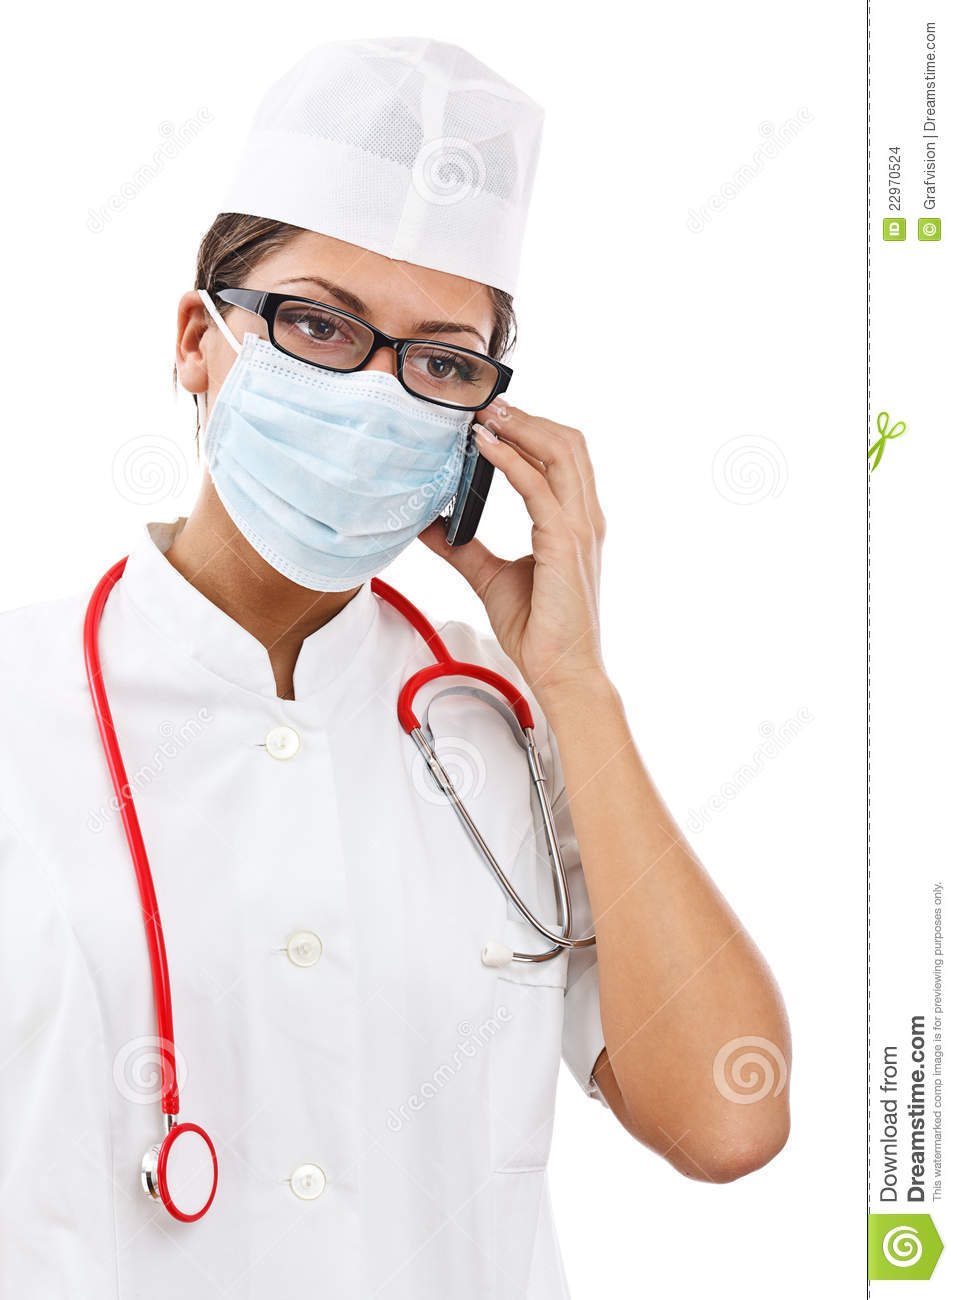 Busy Female Doctor Stock Images - Image: 22970524